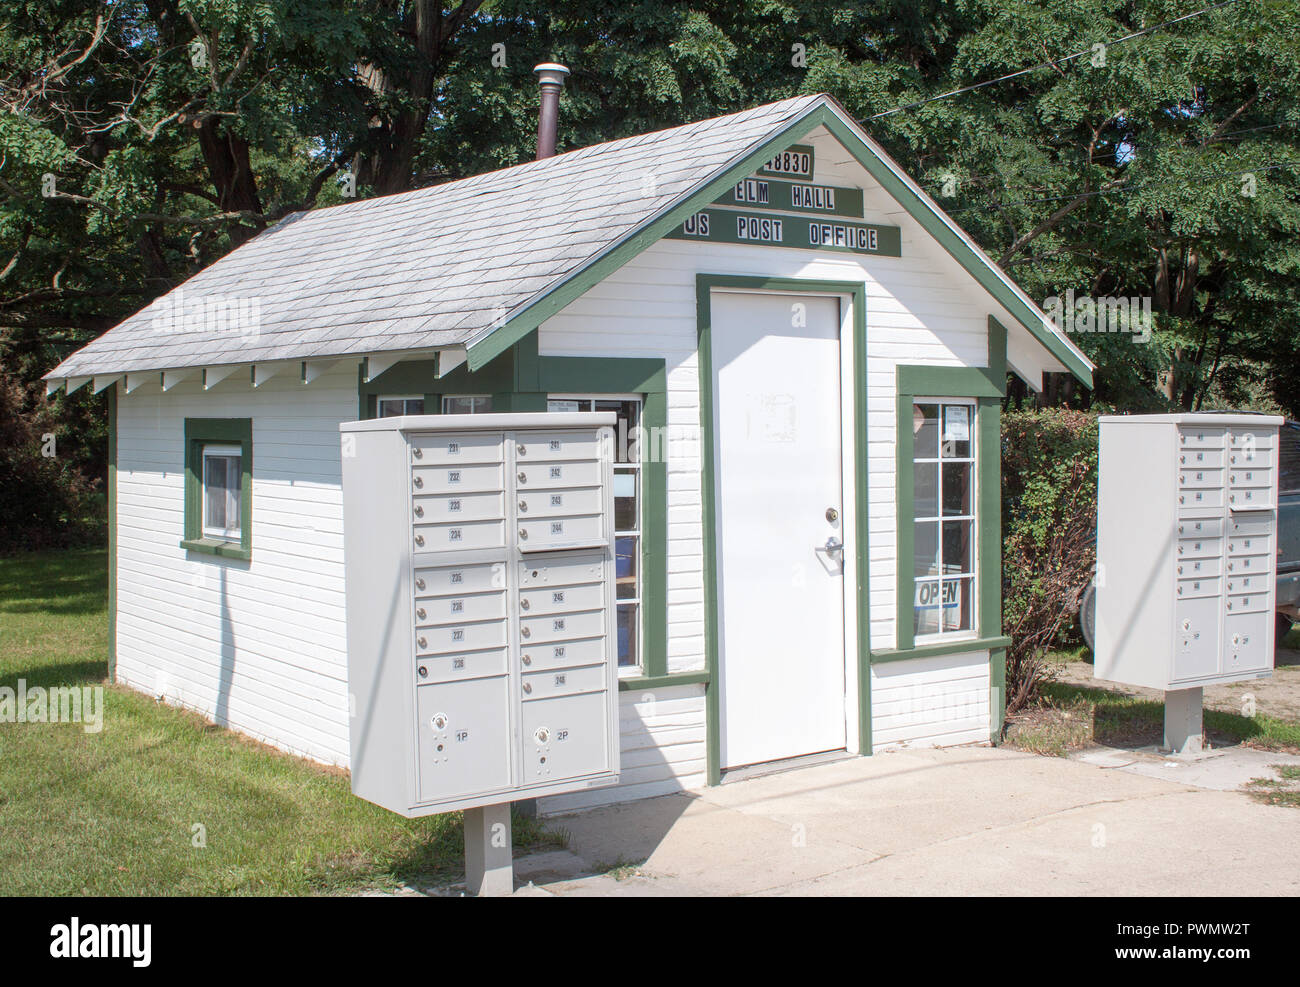 Michigan's smallest post office in Elm Hall, Michigan - Stock Image